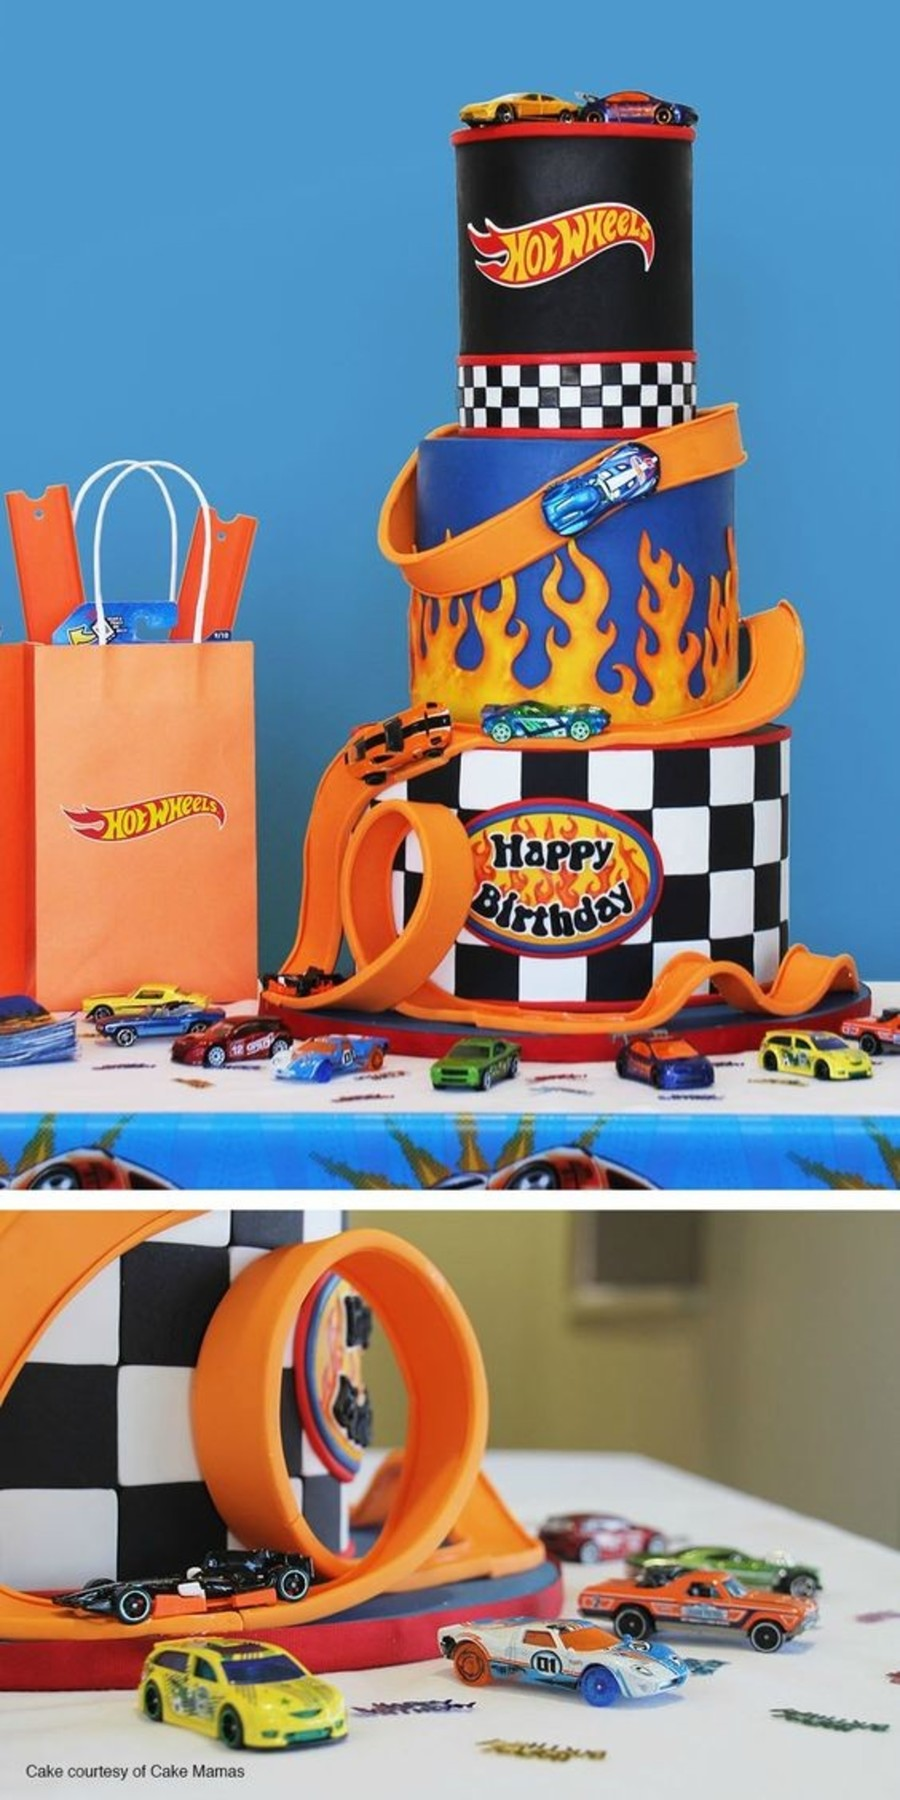 Surprising Hot Wheels 3 Tier Birthday Cake Cakecentral Com Funny Birthday Cards Online Chimdamsfinfo